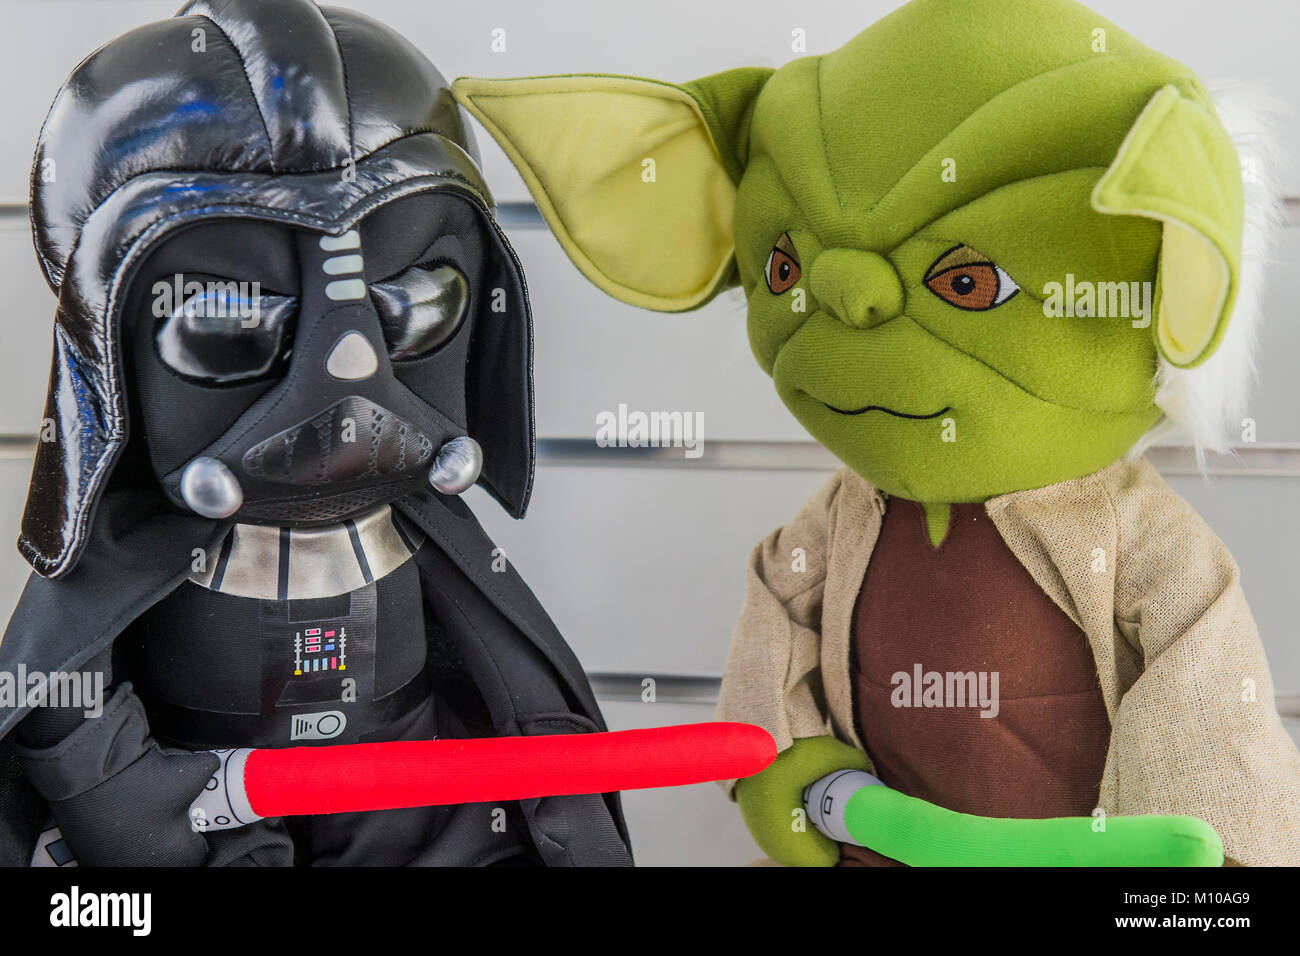 a9524922ea691 Star Wars Yoda Stock Photos   Star Wars Yoda Stock Images - Alamy